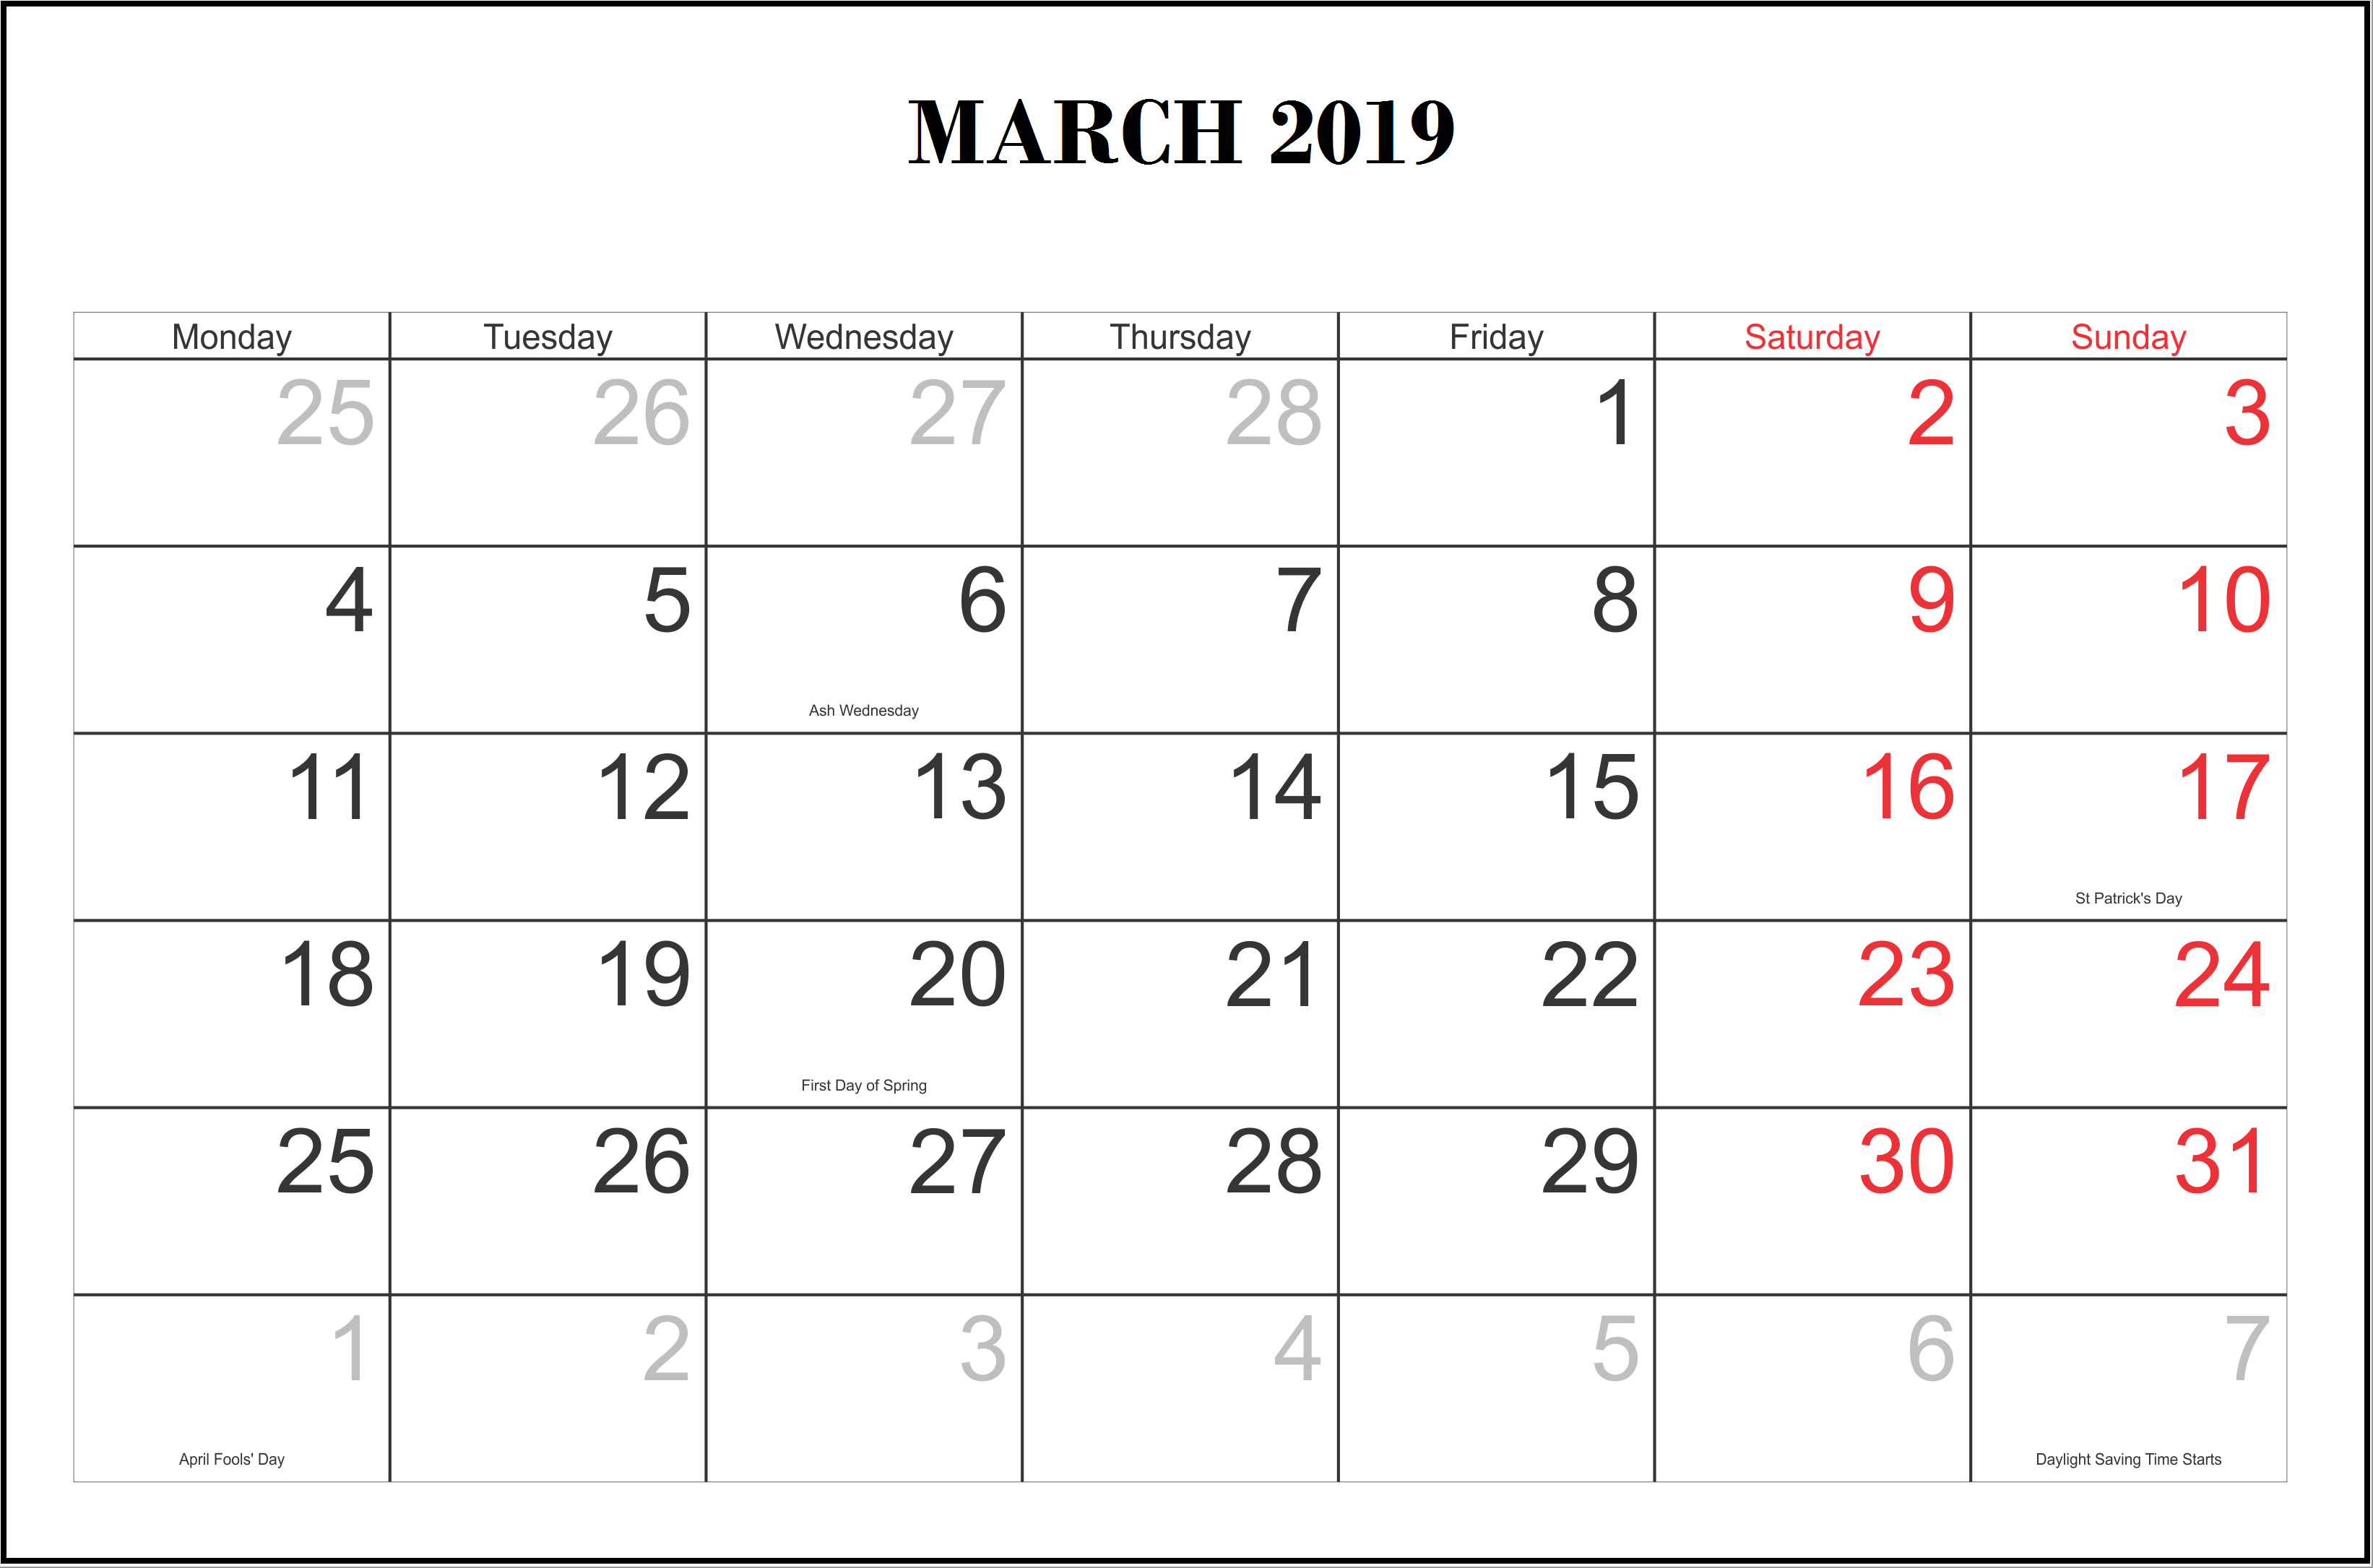 March 2019 Calendar With Holidays